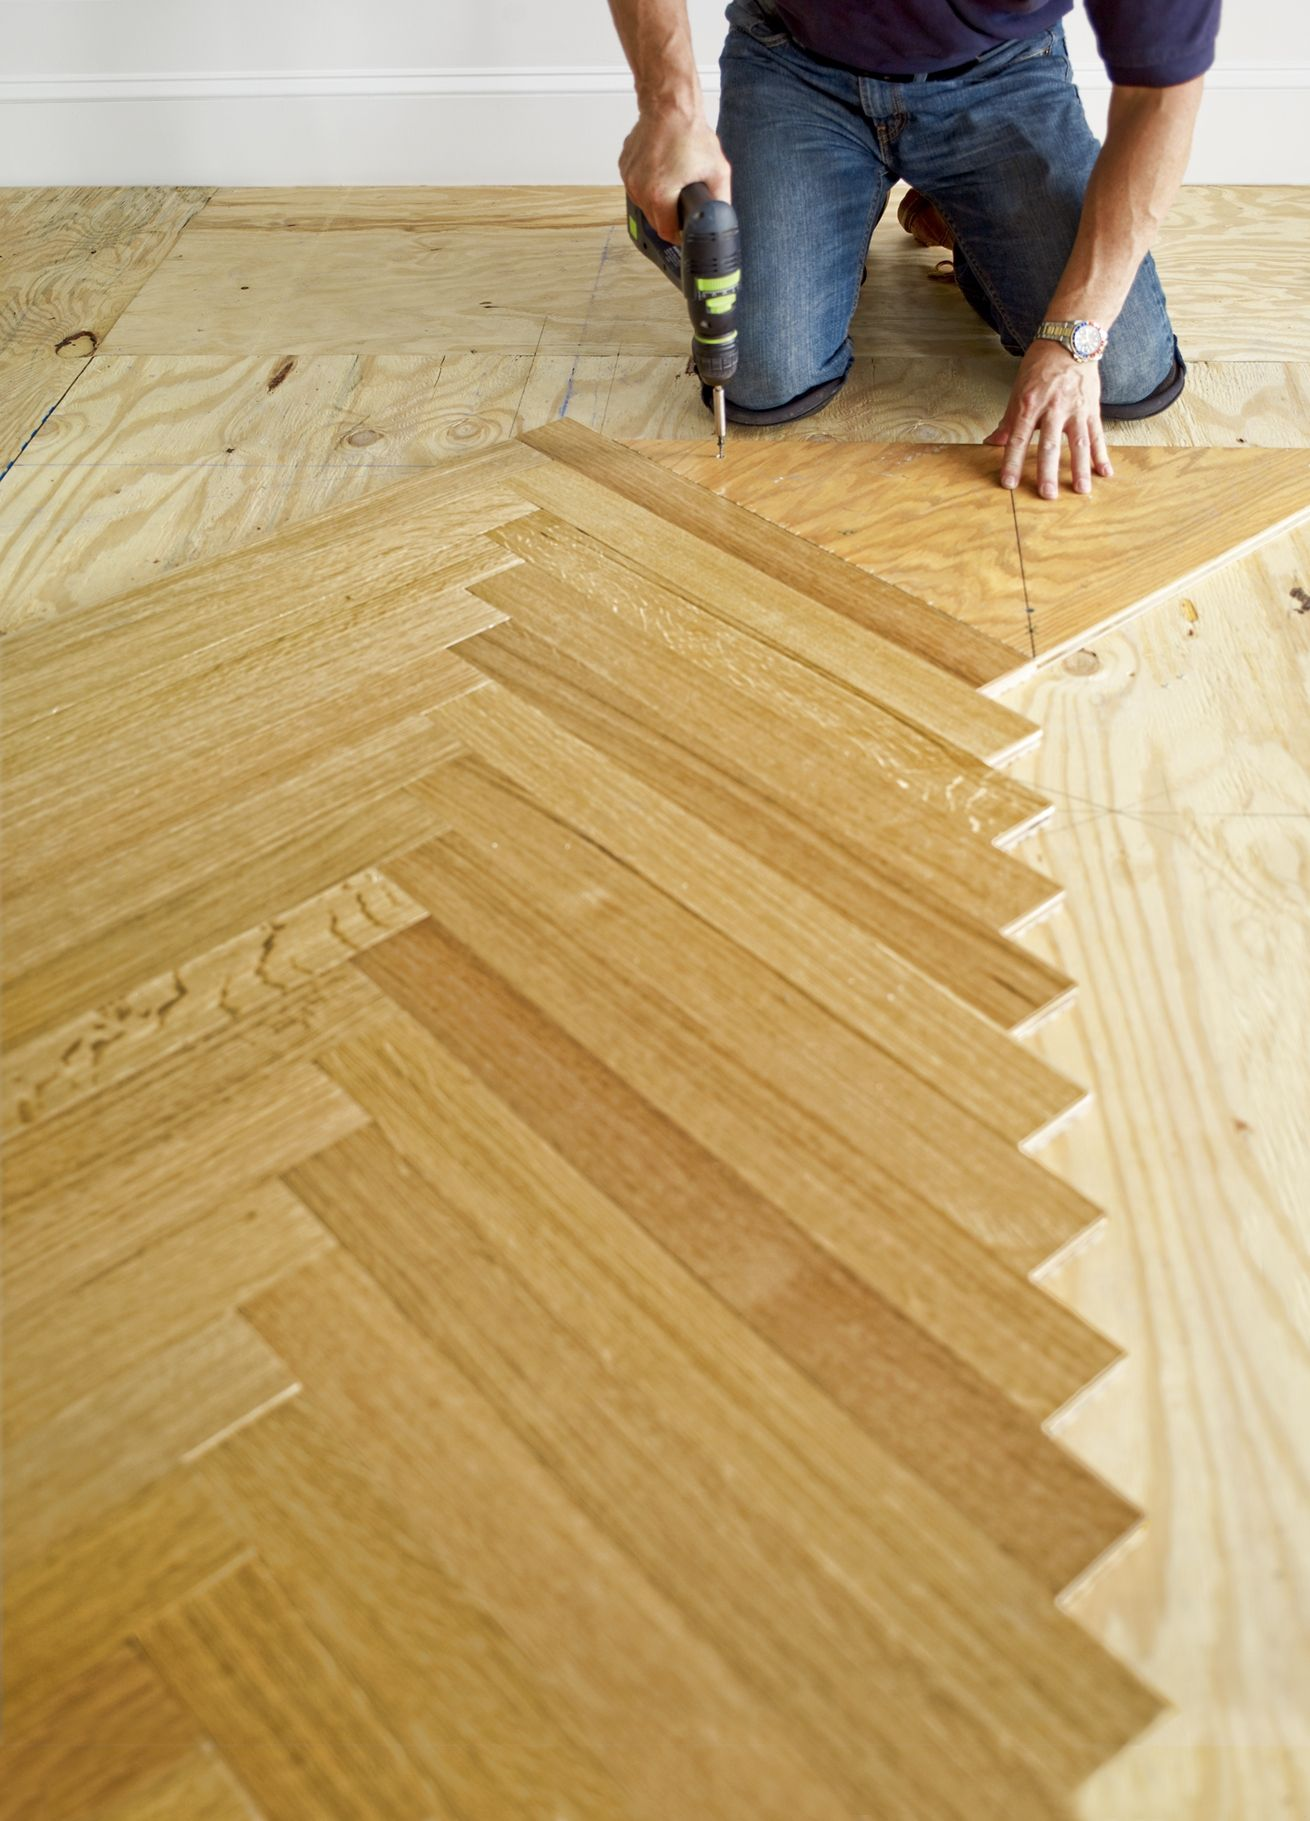 How To Install A Herringbone Floor Carpentry Flooring